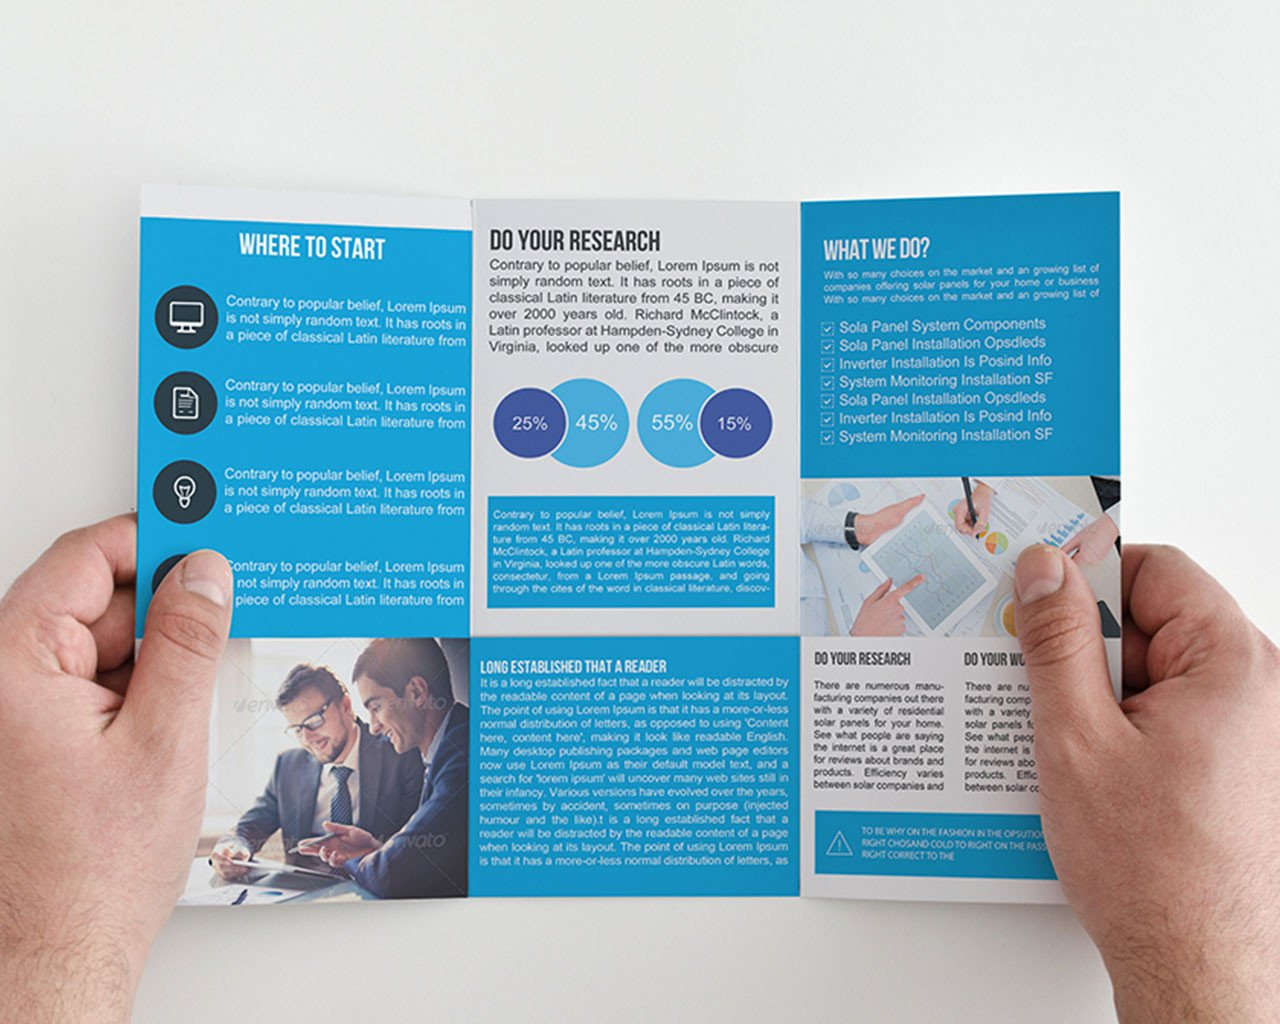 Tri Fold Brochure Design Insssrenterprisesco - Business tri fold brochure templates